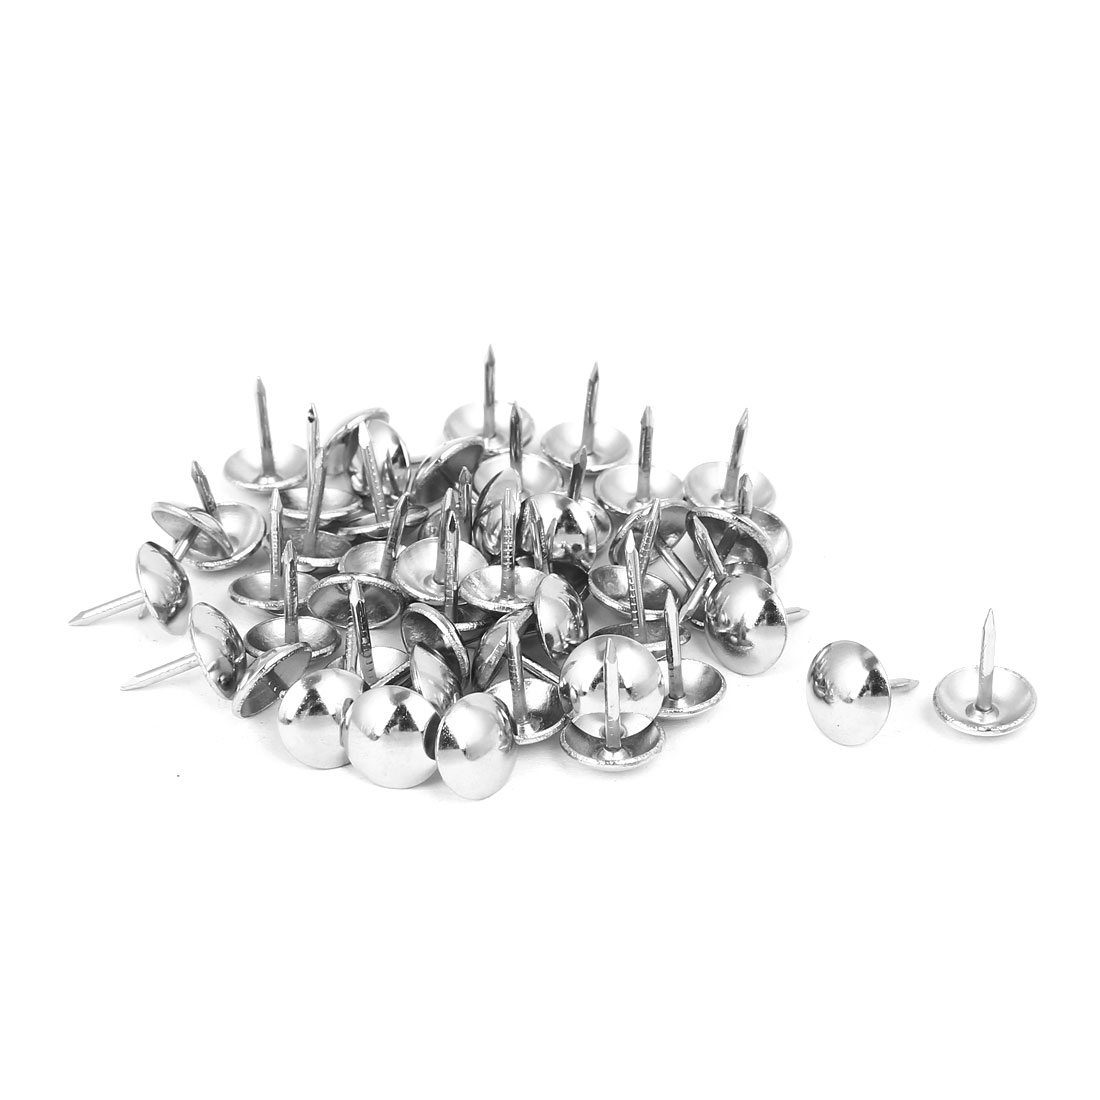 10mm Head Dia 13mm Height Upholstery Nail Thumb Tacks Push Pin Silver Tone 50pcs